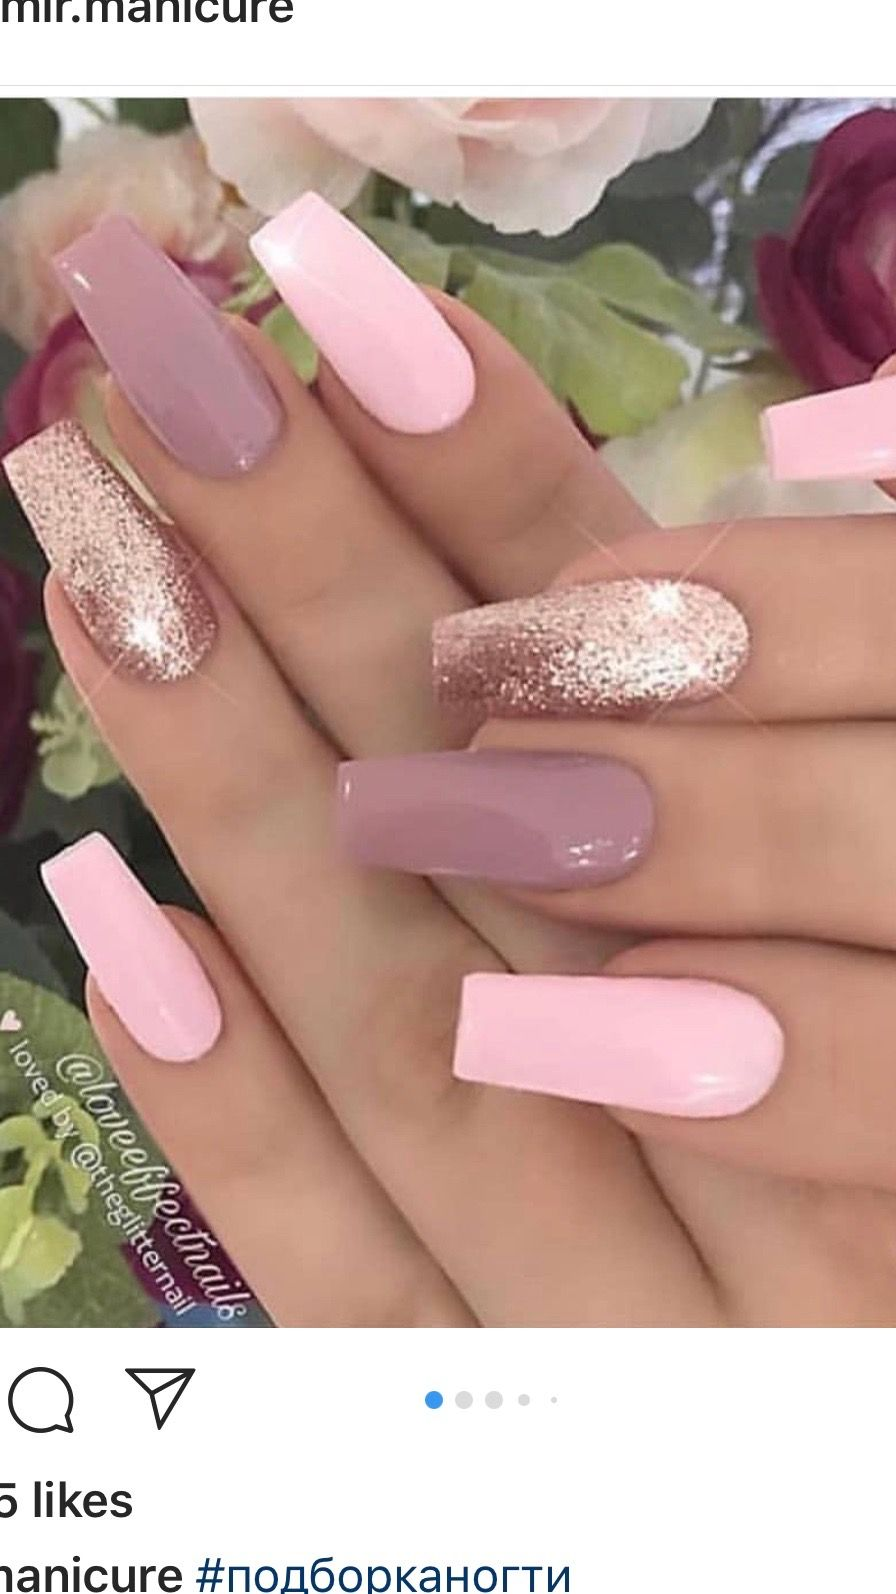 Pin By Lgwills On Nail Art Designs In 2020 Pink Nail Art Pink